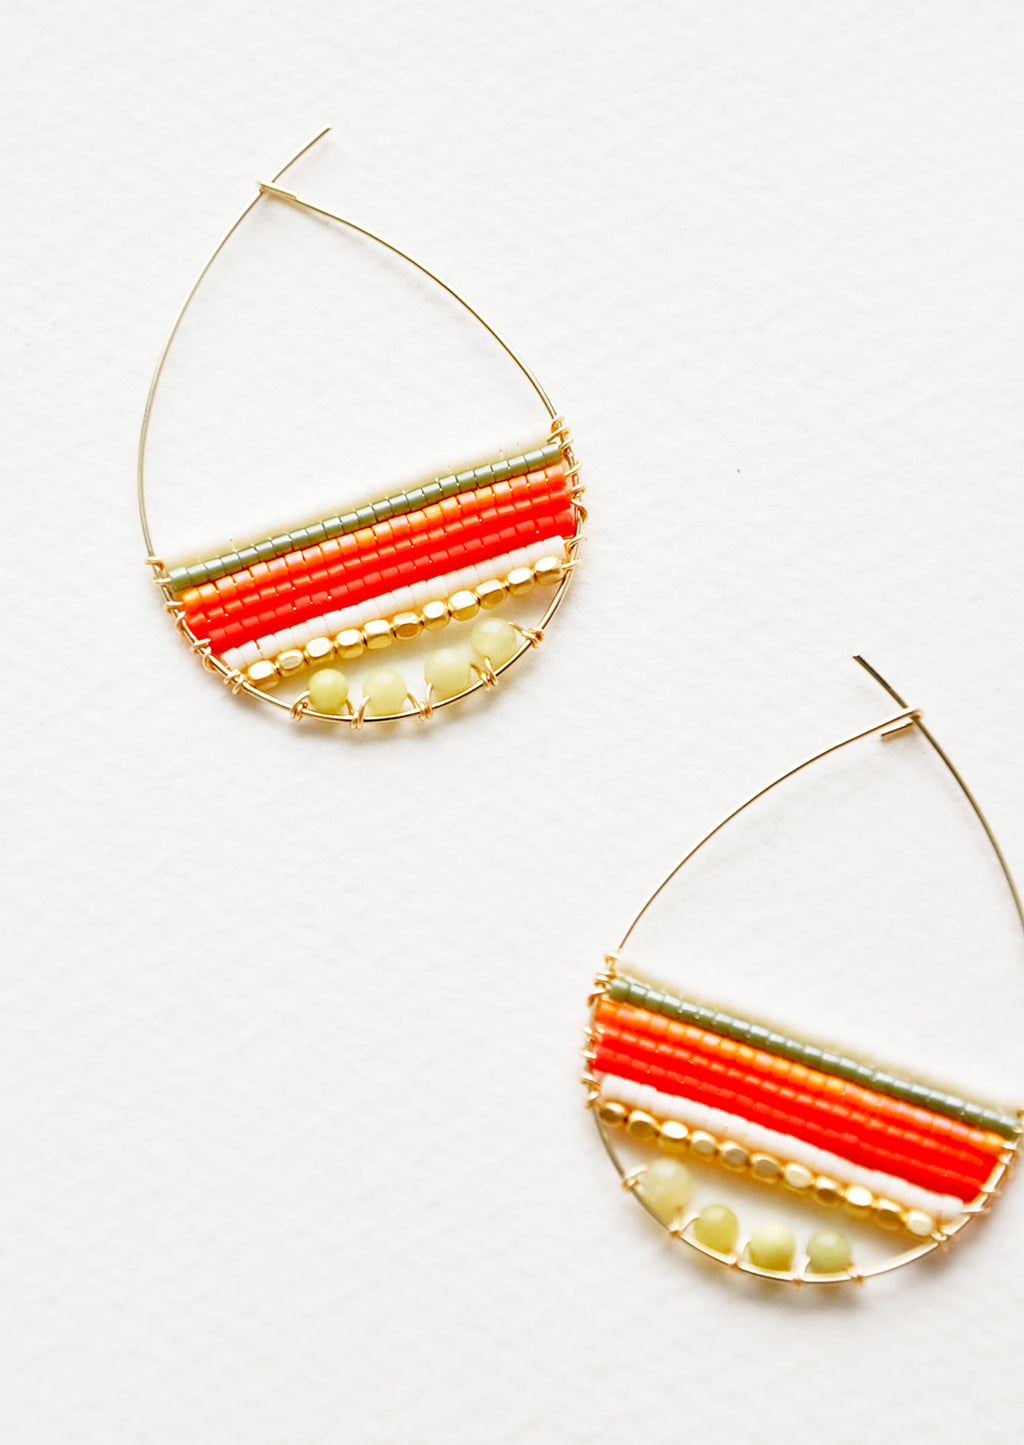 Olive / Orange Multi: Teardrop shaped hoop earrings in yellow gold with multicolored yellow and red beaded bars across.